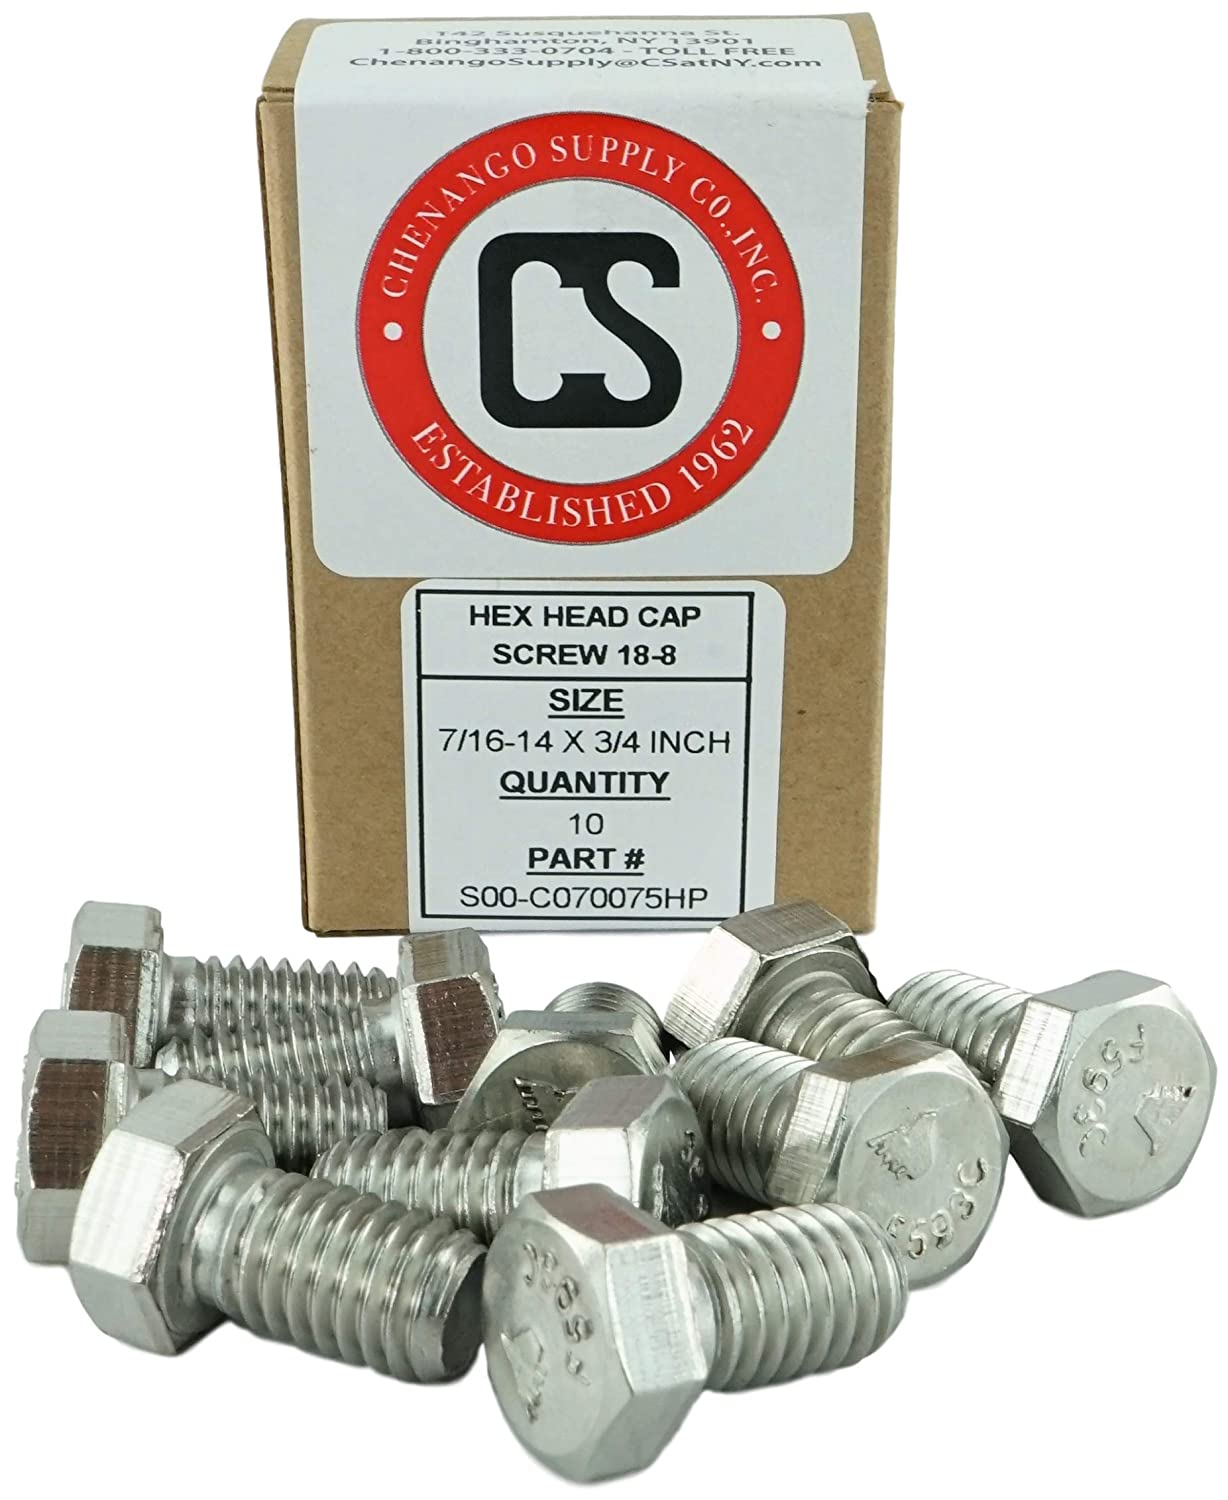 Stainless 7//16-14 x 1-3//4 Hex Head Bolts 7//16-14 x 1-3//4 3//4 To 5 Lengths Available in Listing 304 Stainless Steel 10 pieces